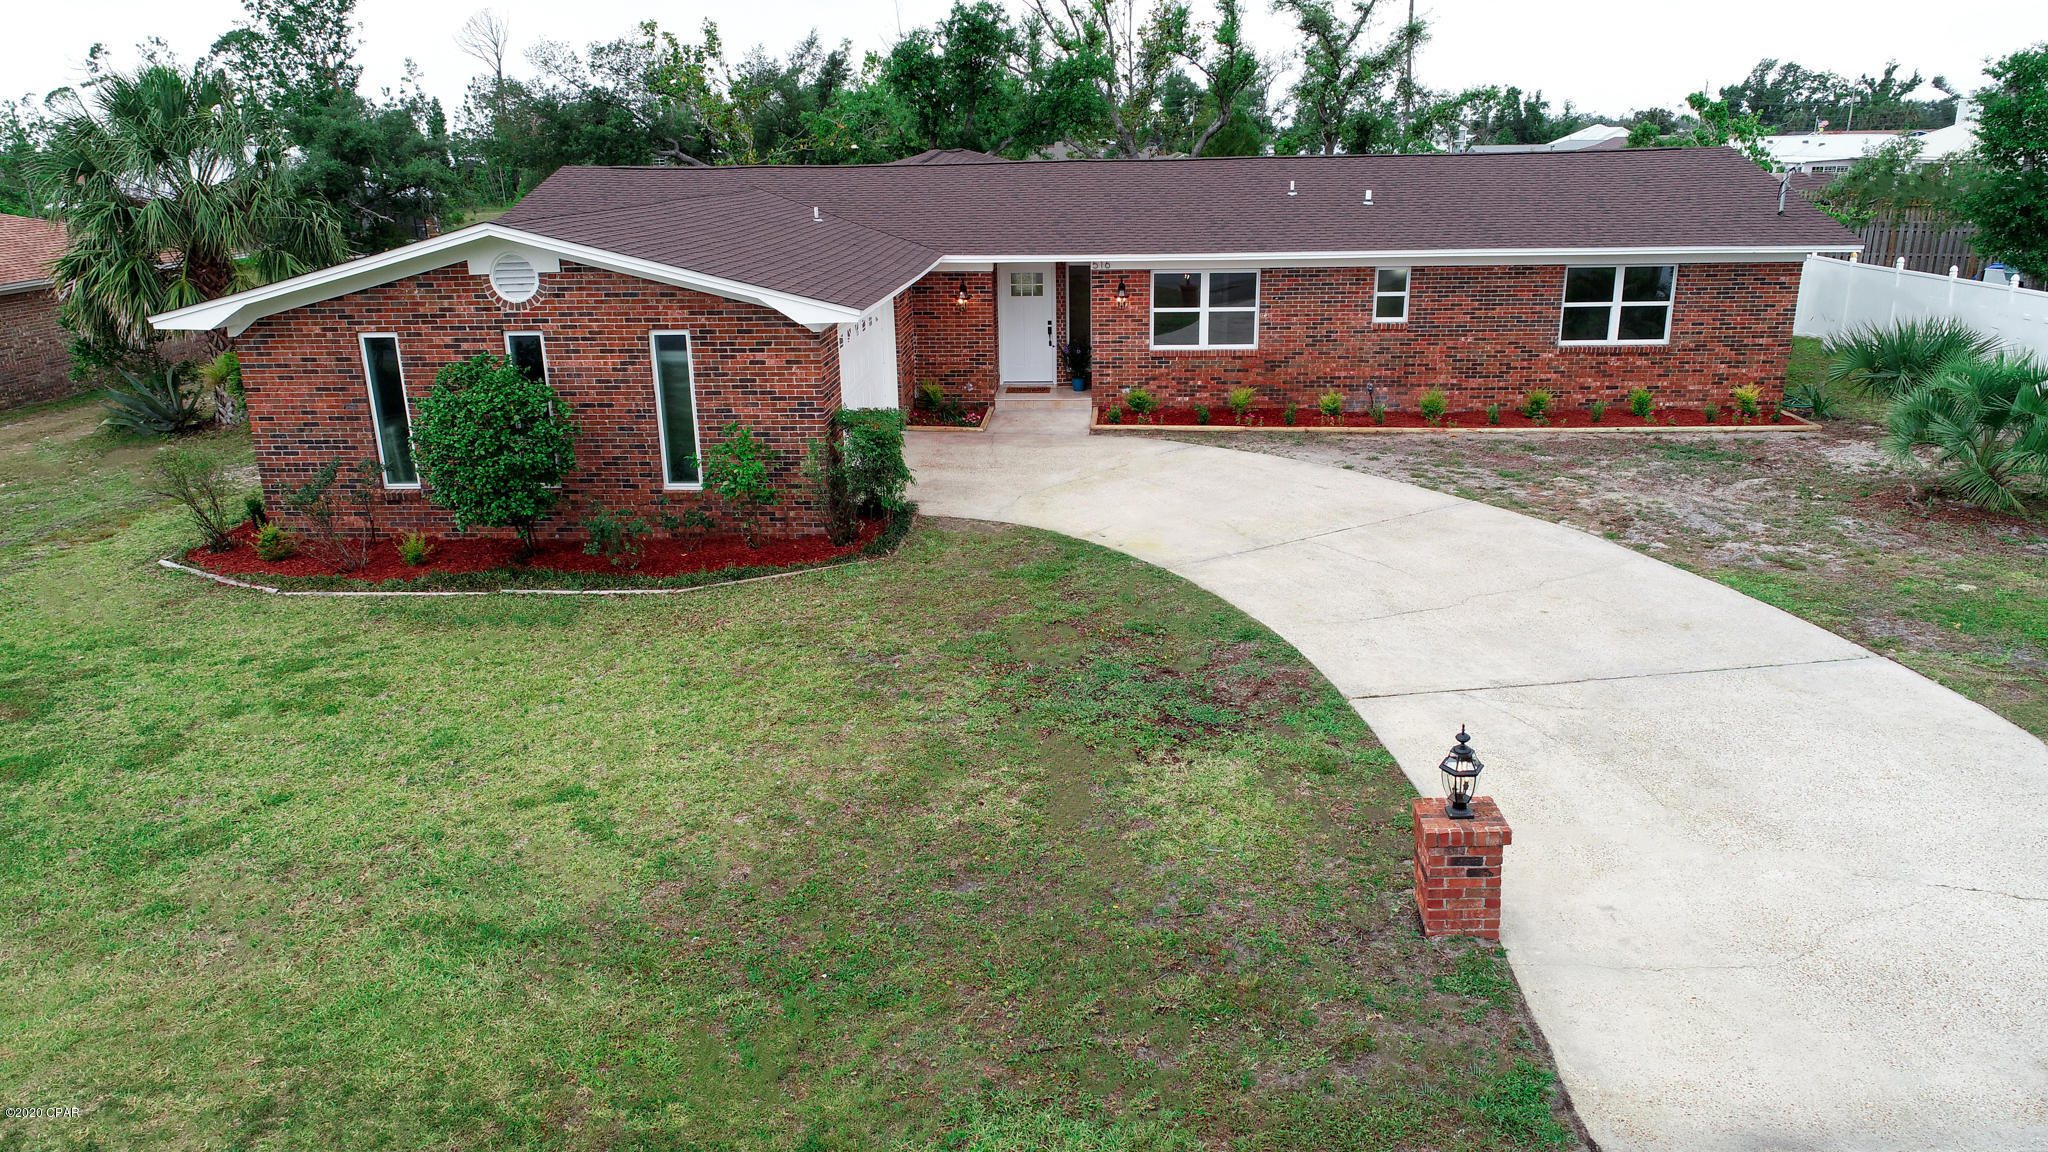 Photo of 516 Old Forest Way Road Panama City FL 32404